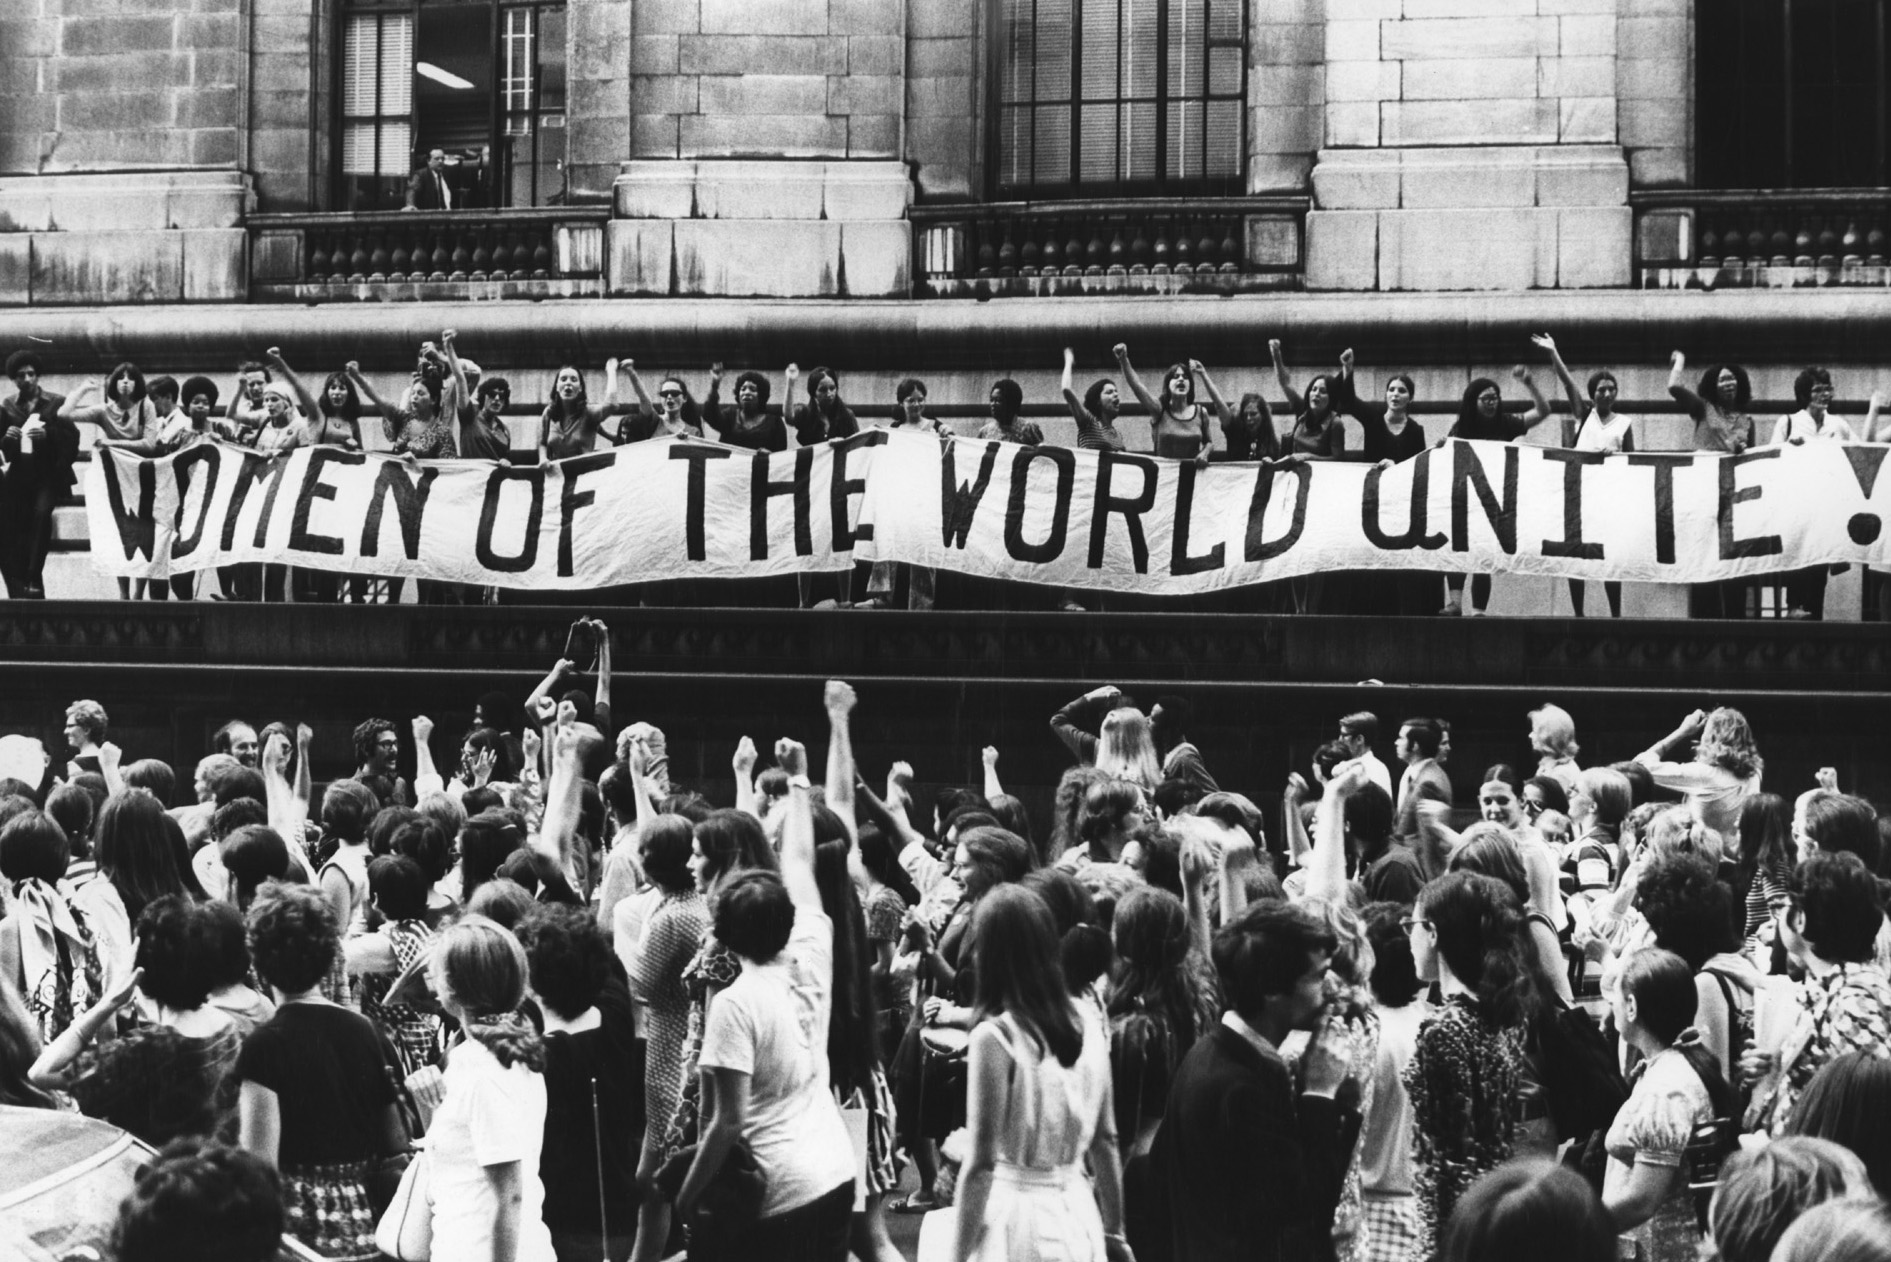 women-of-the-world-unite-womens-liberation-demonstration-august-26-1970-21.jpg